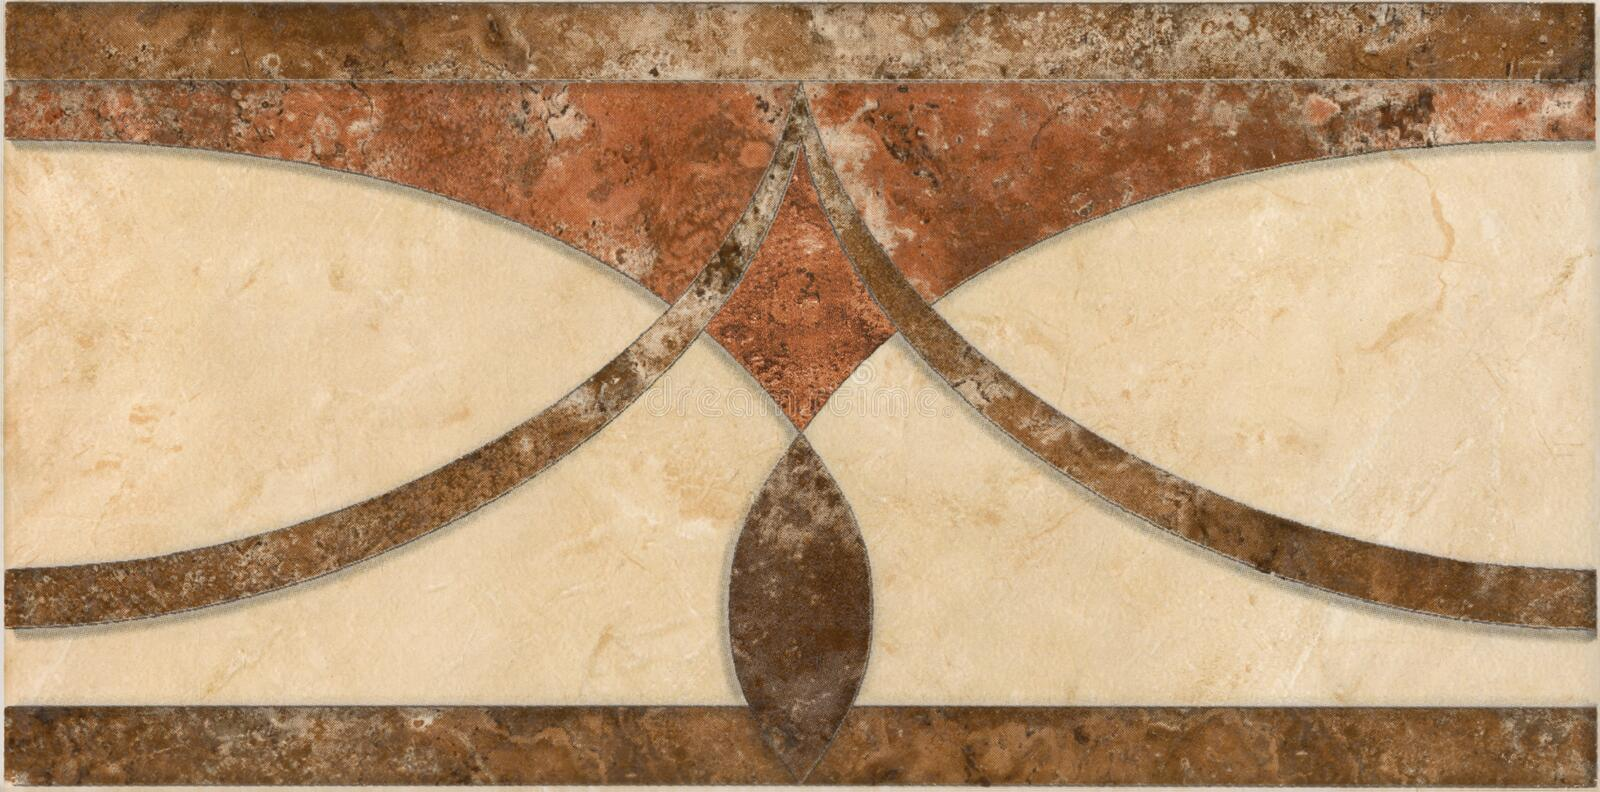 Fretwork tile brown and beige. Greek roman style royalty free stock photos